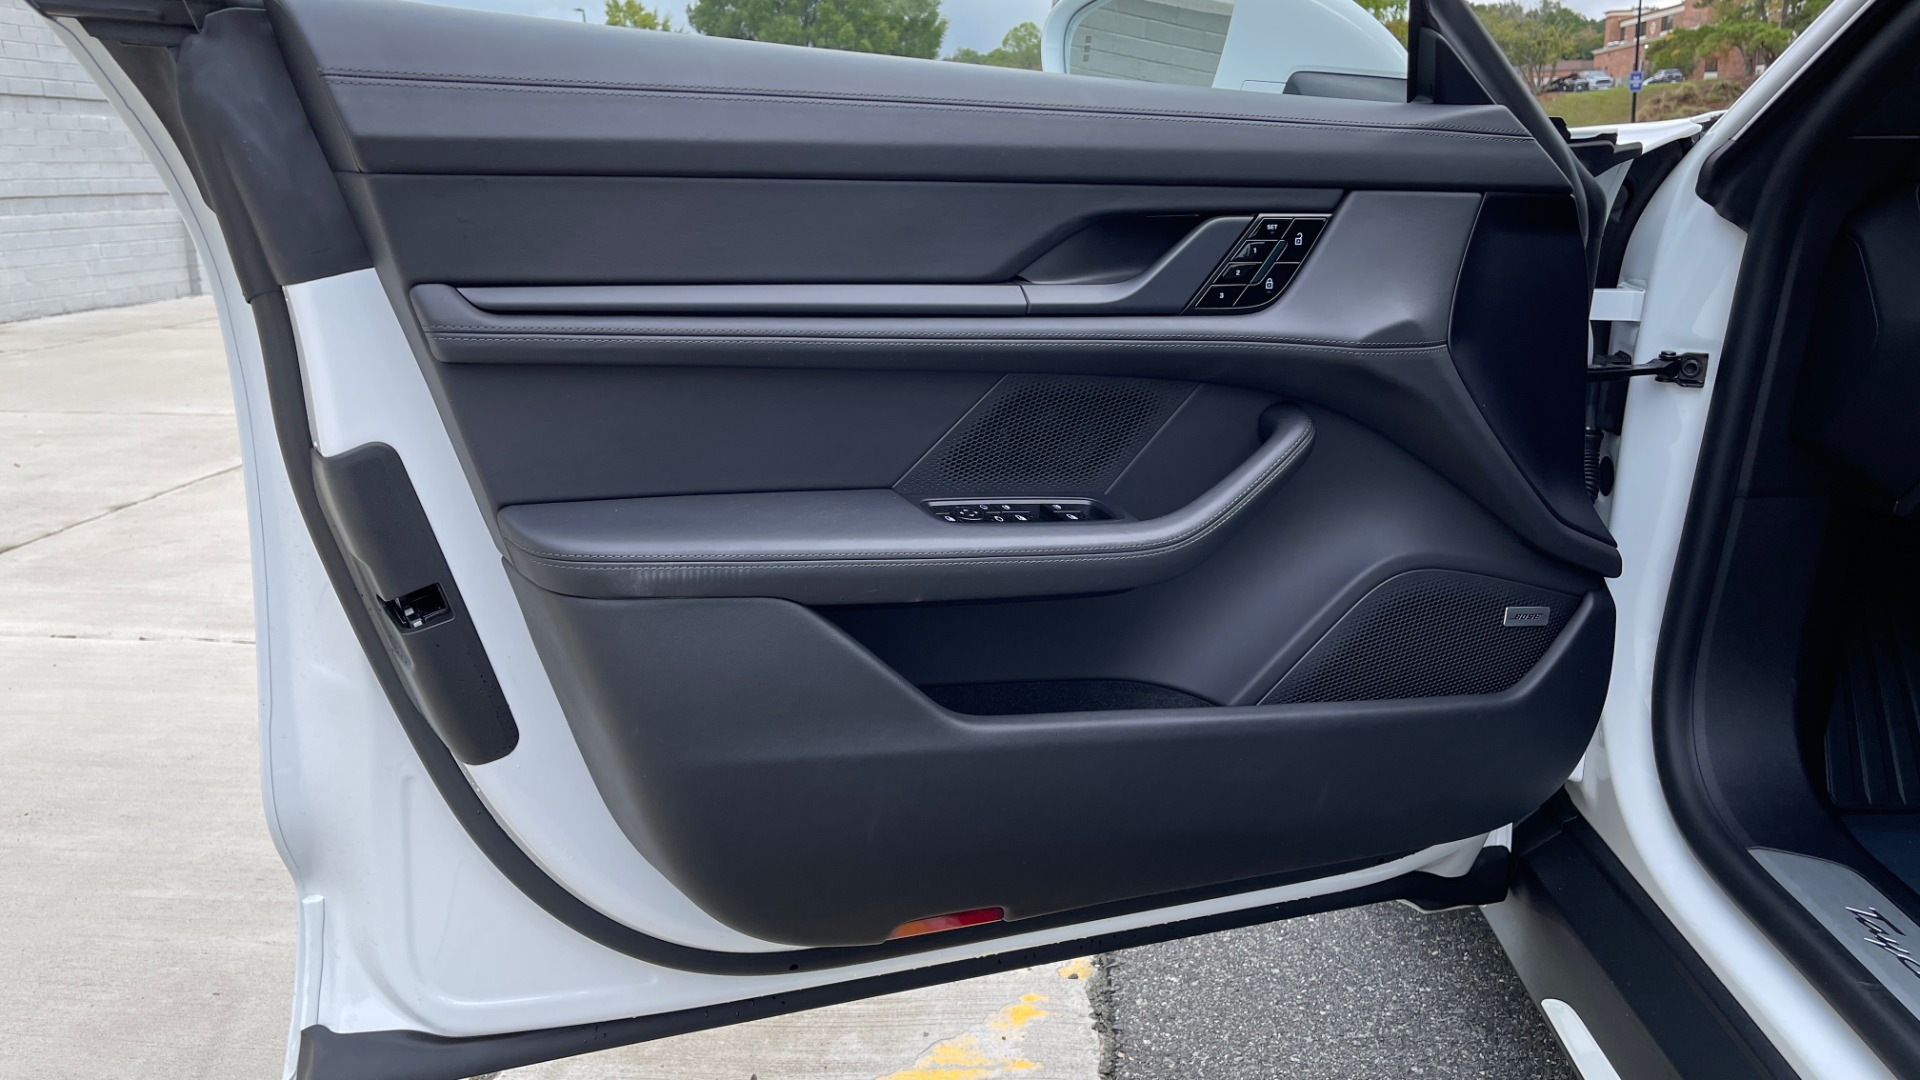 Used 2020 Porsche TAYCAN TURBO SEDAN / AWD / NAV / BOSE / PANO-ROOF / LCA / SURROUND VIEW for sale $162,995 at Formula Imports in Charlotte NC 28227 32